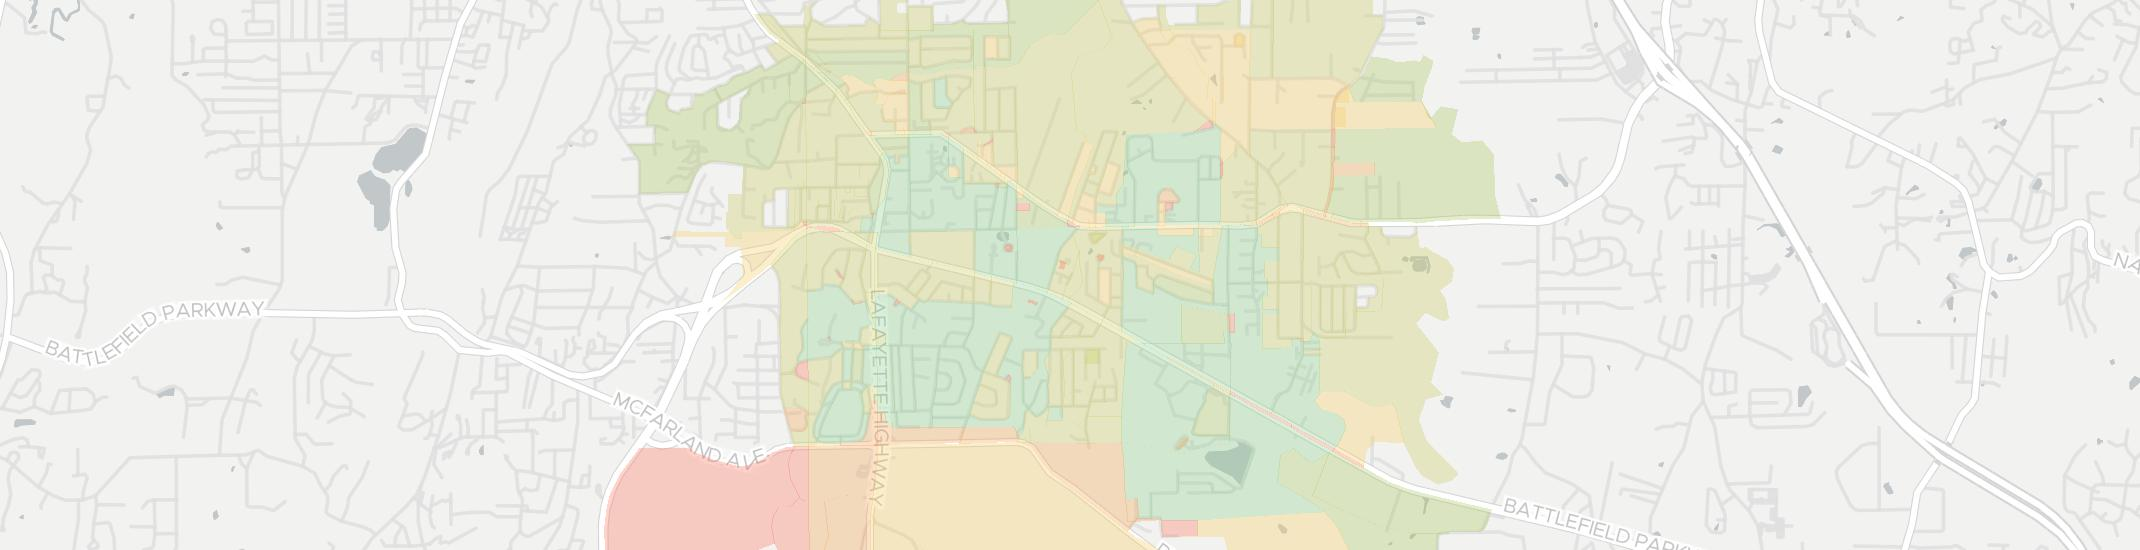 Fort Oglethorpe Internet Competition Map. Click for interactive map.